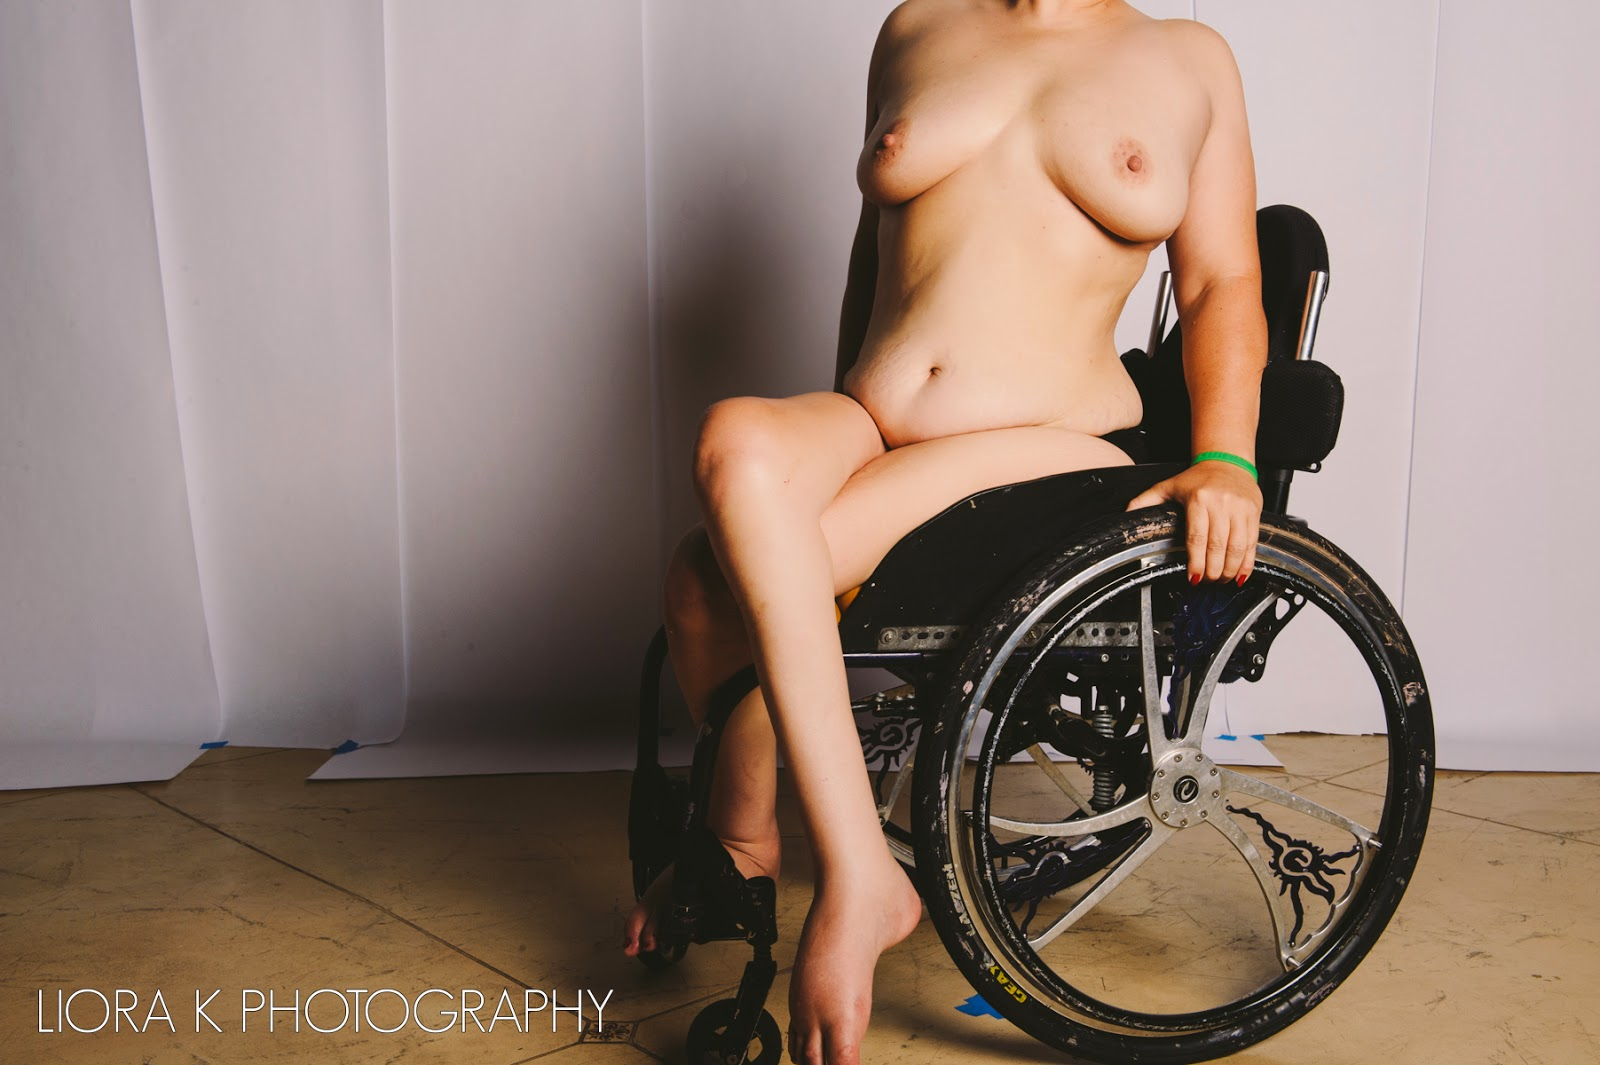 Nude paraplegic photos that